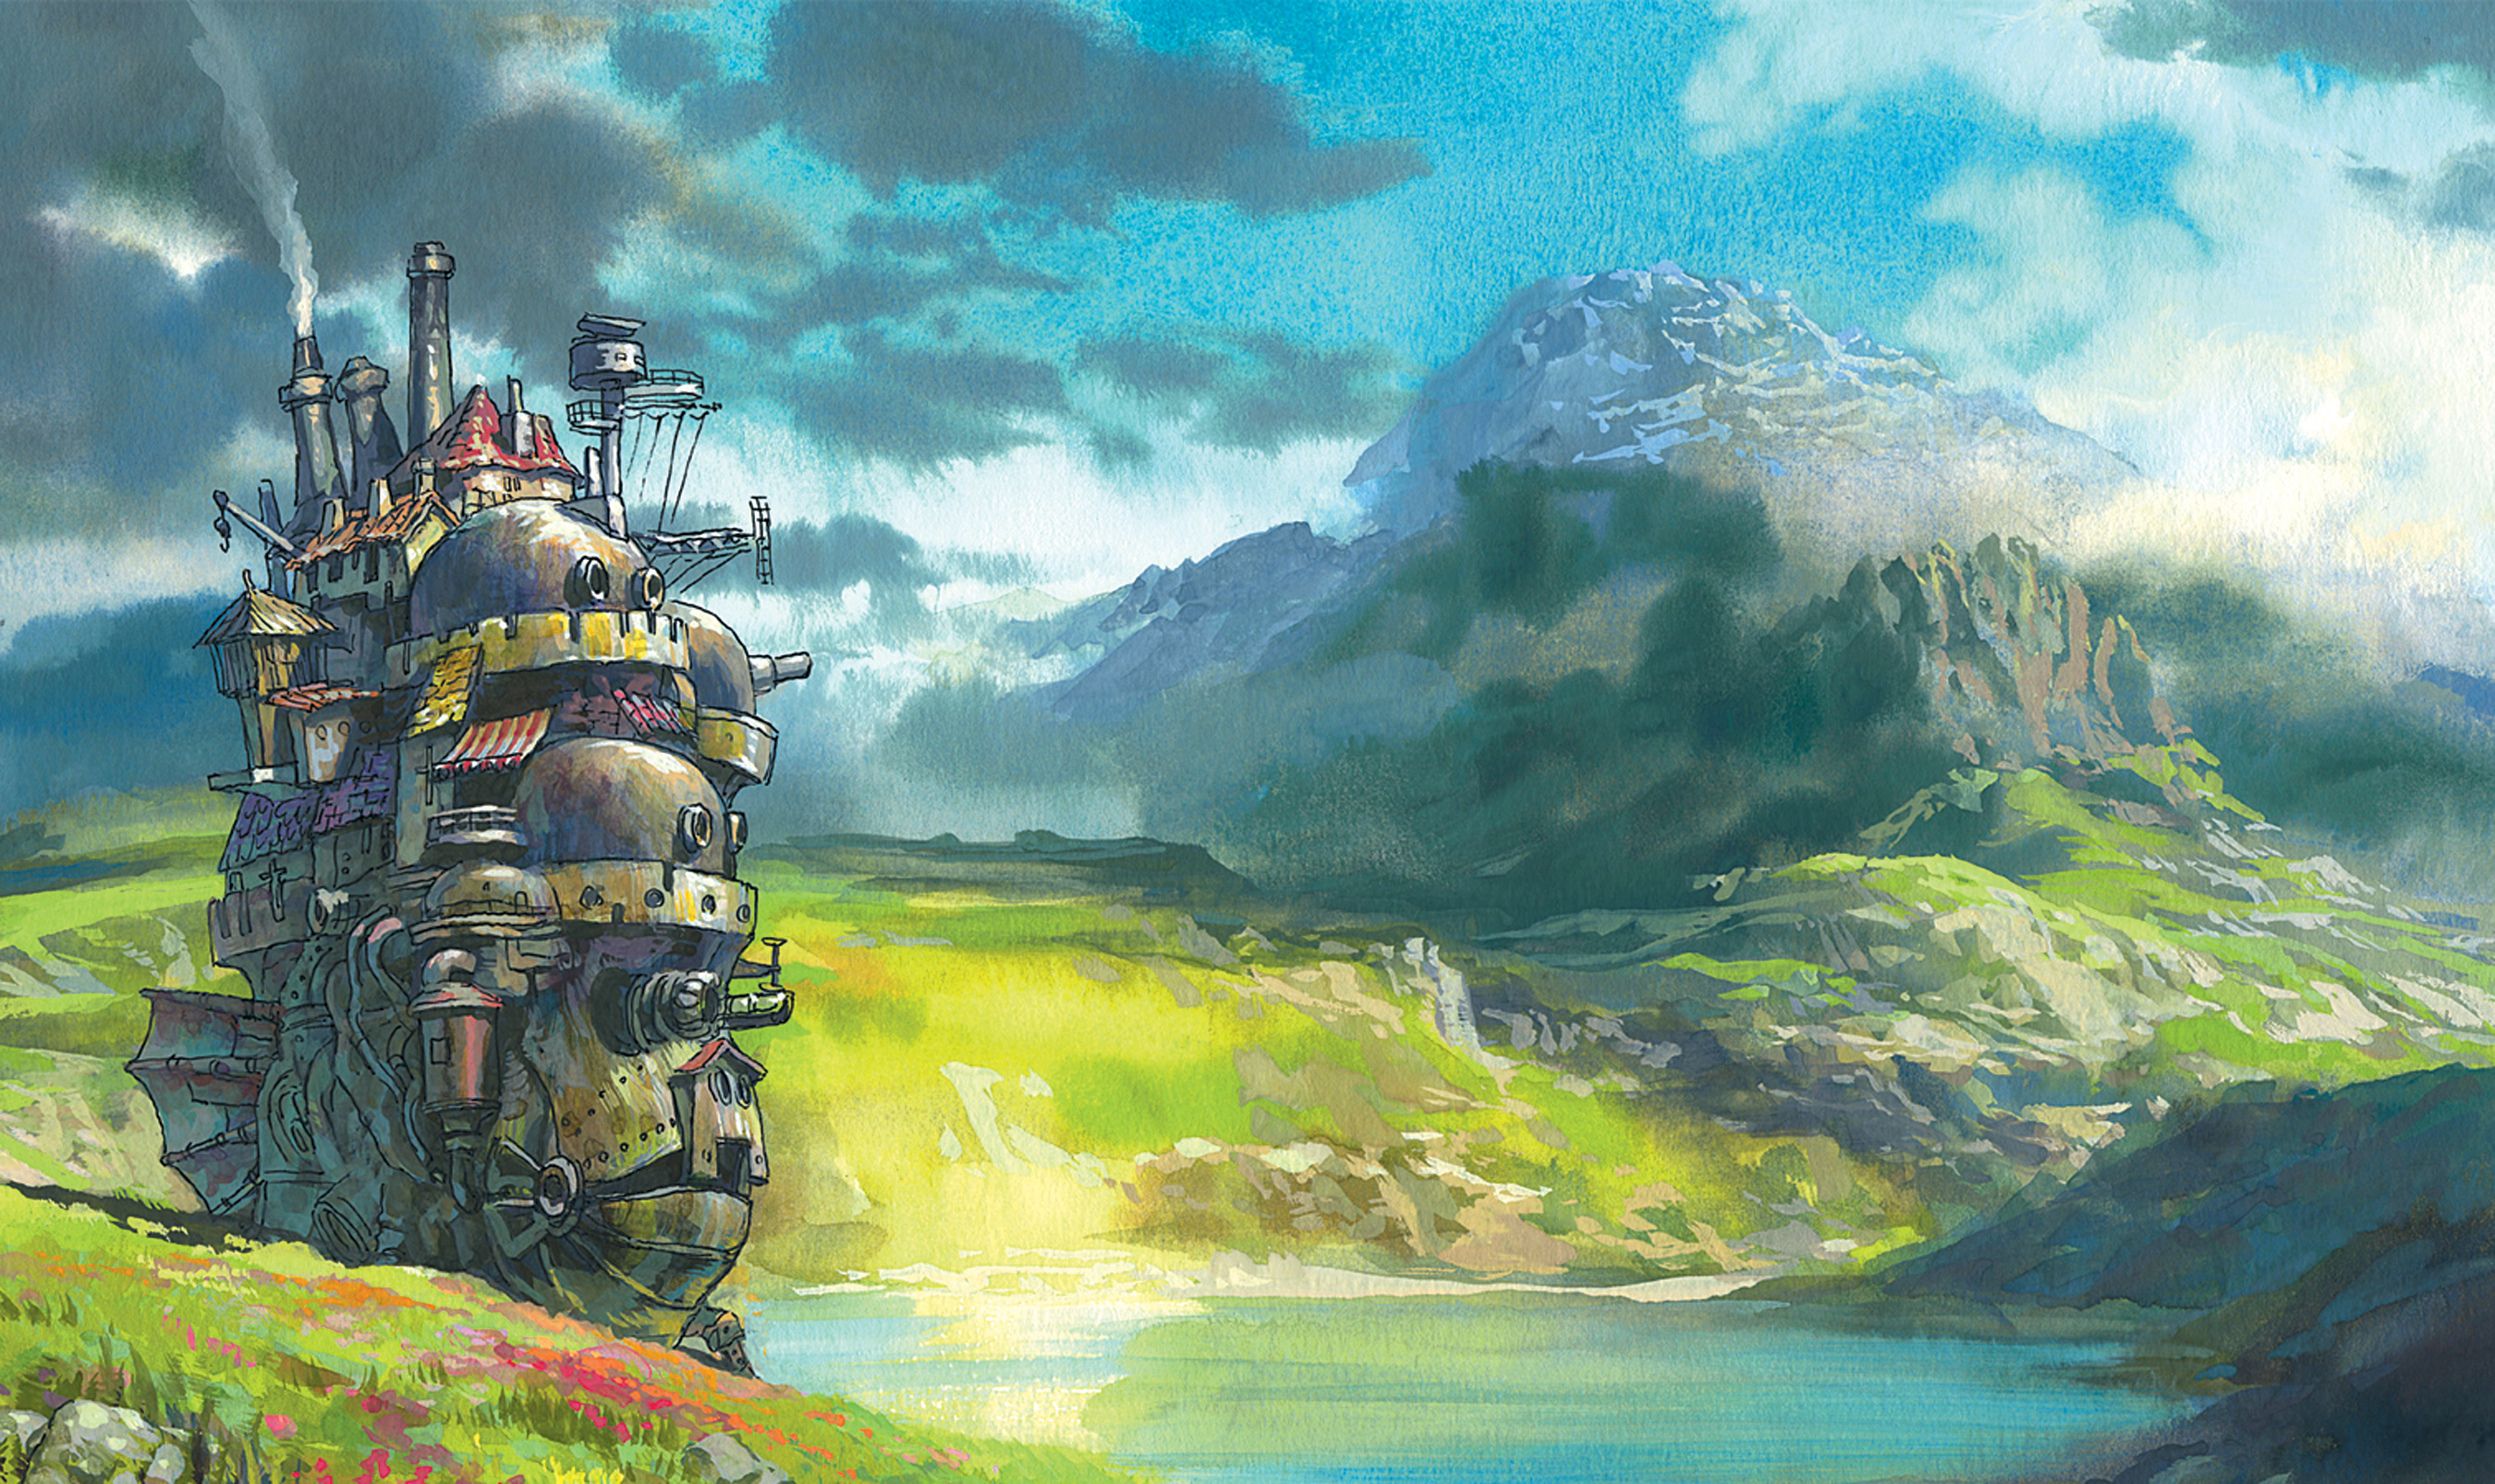 Beautiful Howl's Moving Castle Art - Evan's Blog